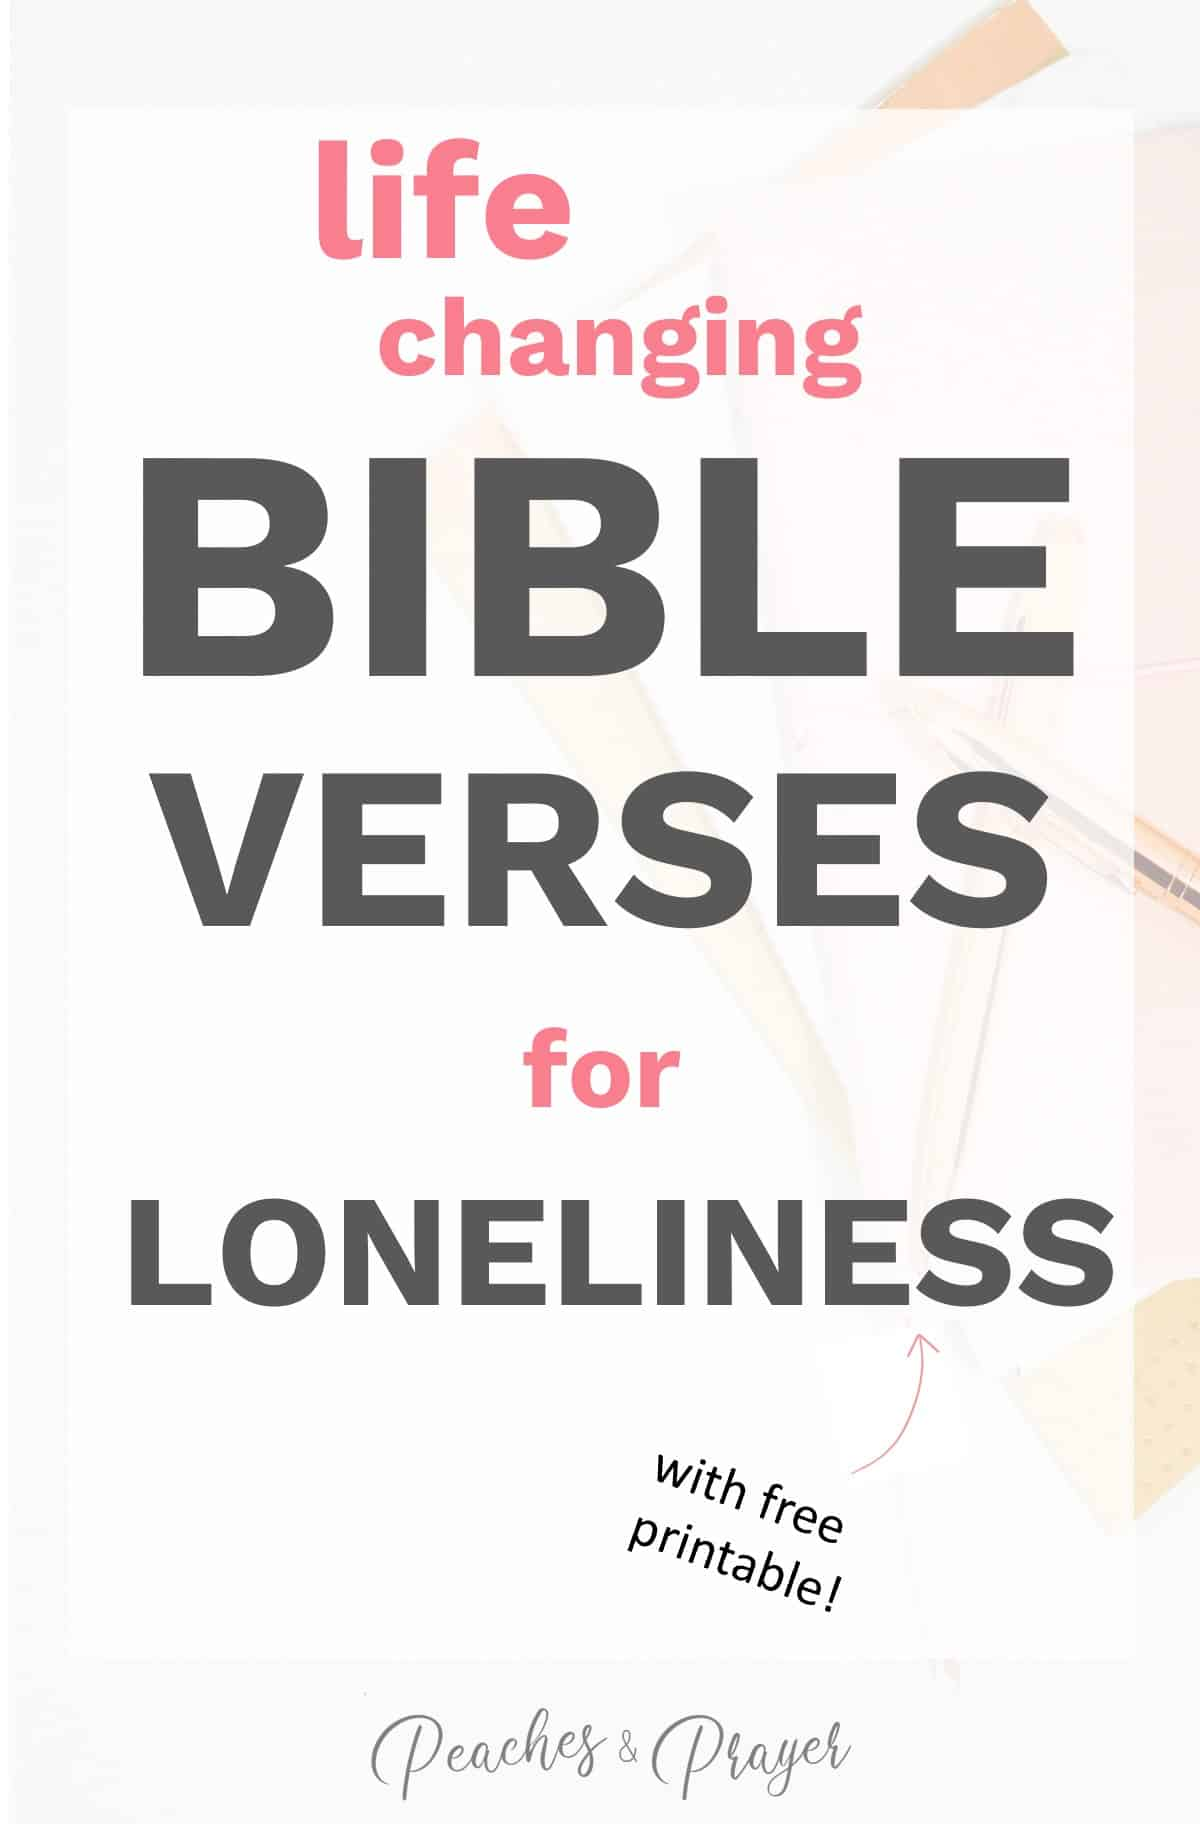 Life Changing Bible Verses for Loneliness